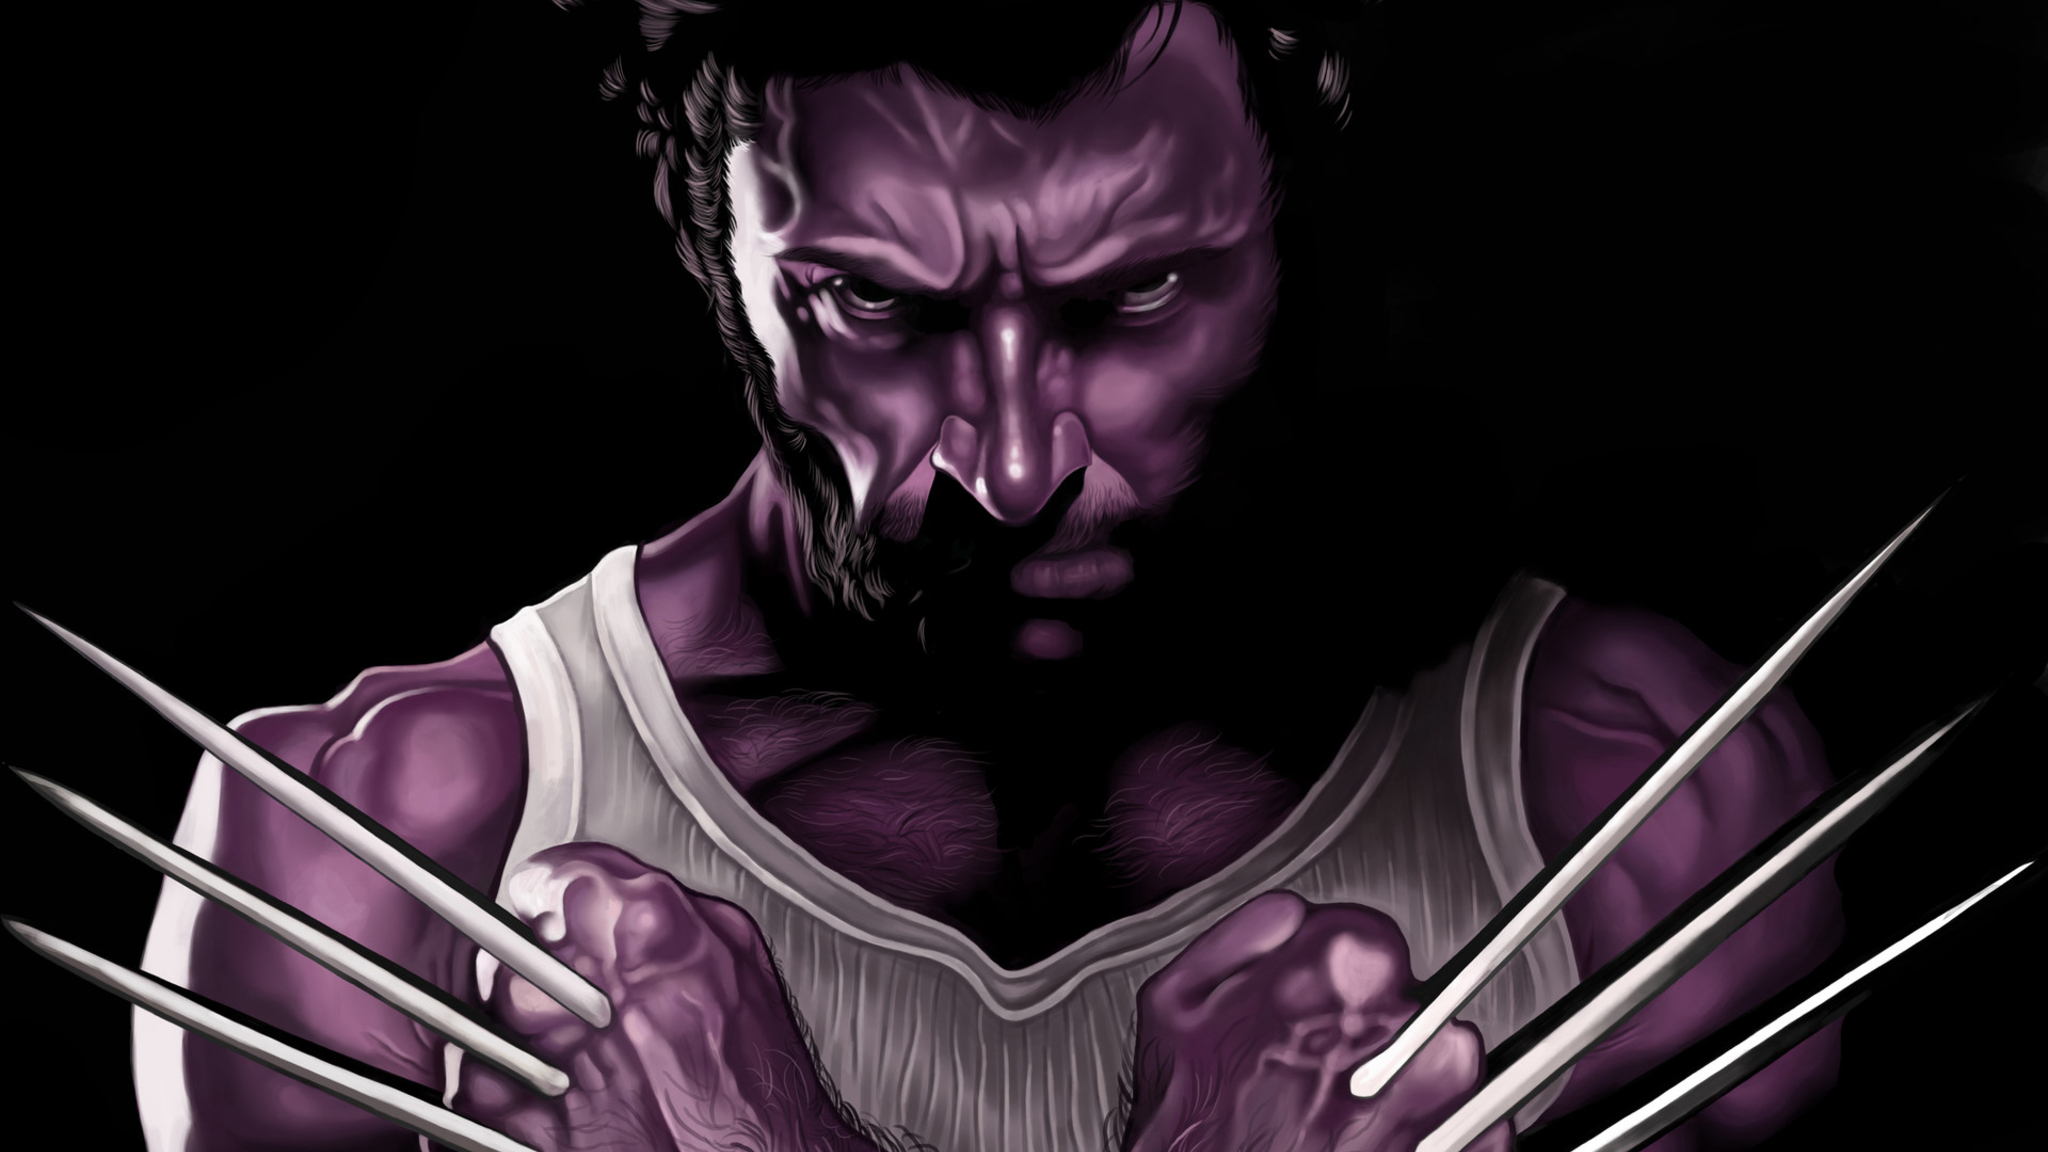 2048x1152 wolverine artwork 2048x1152 resolution hd 4k wallpapers images backgrounds photos - Wallpaper wolverine 4k ...